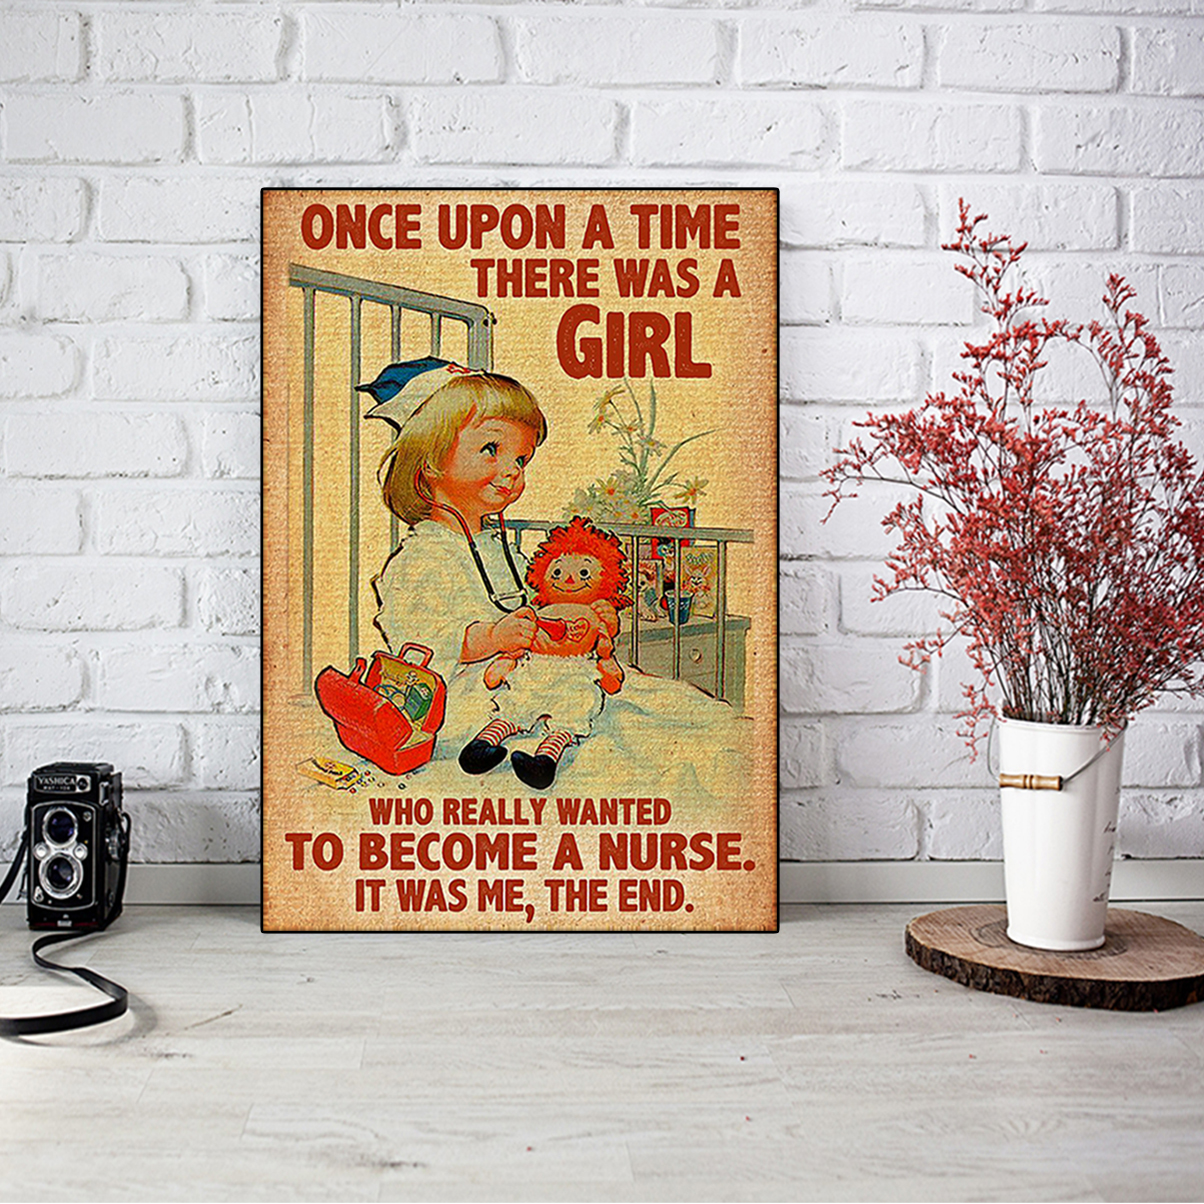 Once upon a time there was a girl who really wanted to become a nurse poster A1